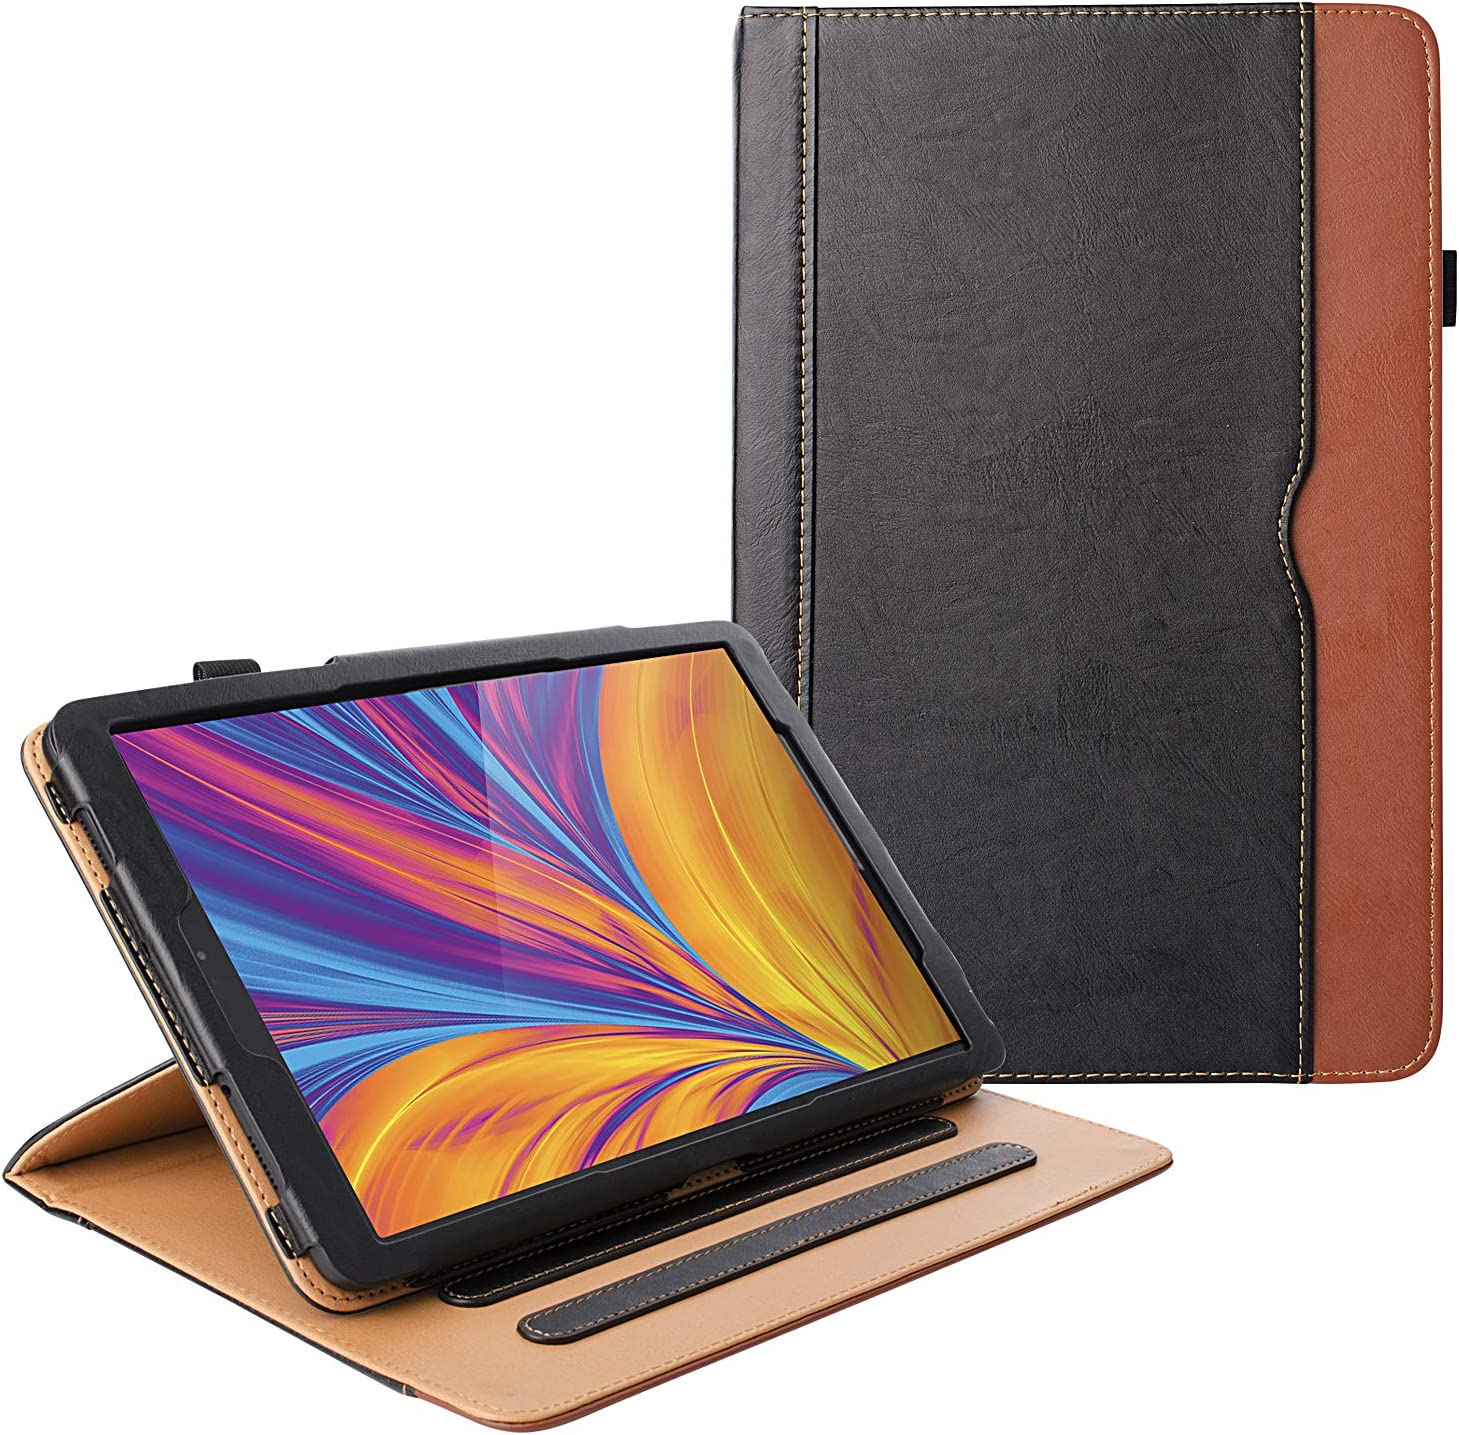 ZoneFoker New Galaxy Tab A 8.0 inch 2019 Tablet Leather Case (SM-T290, SM-T295), 360 Protection Multi-Angle Viewing Folio Stand Cases with Pencil Holder for Samsung SM-T290/SM-T295 Only - Black/Brown